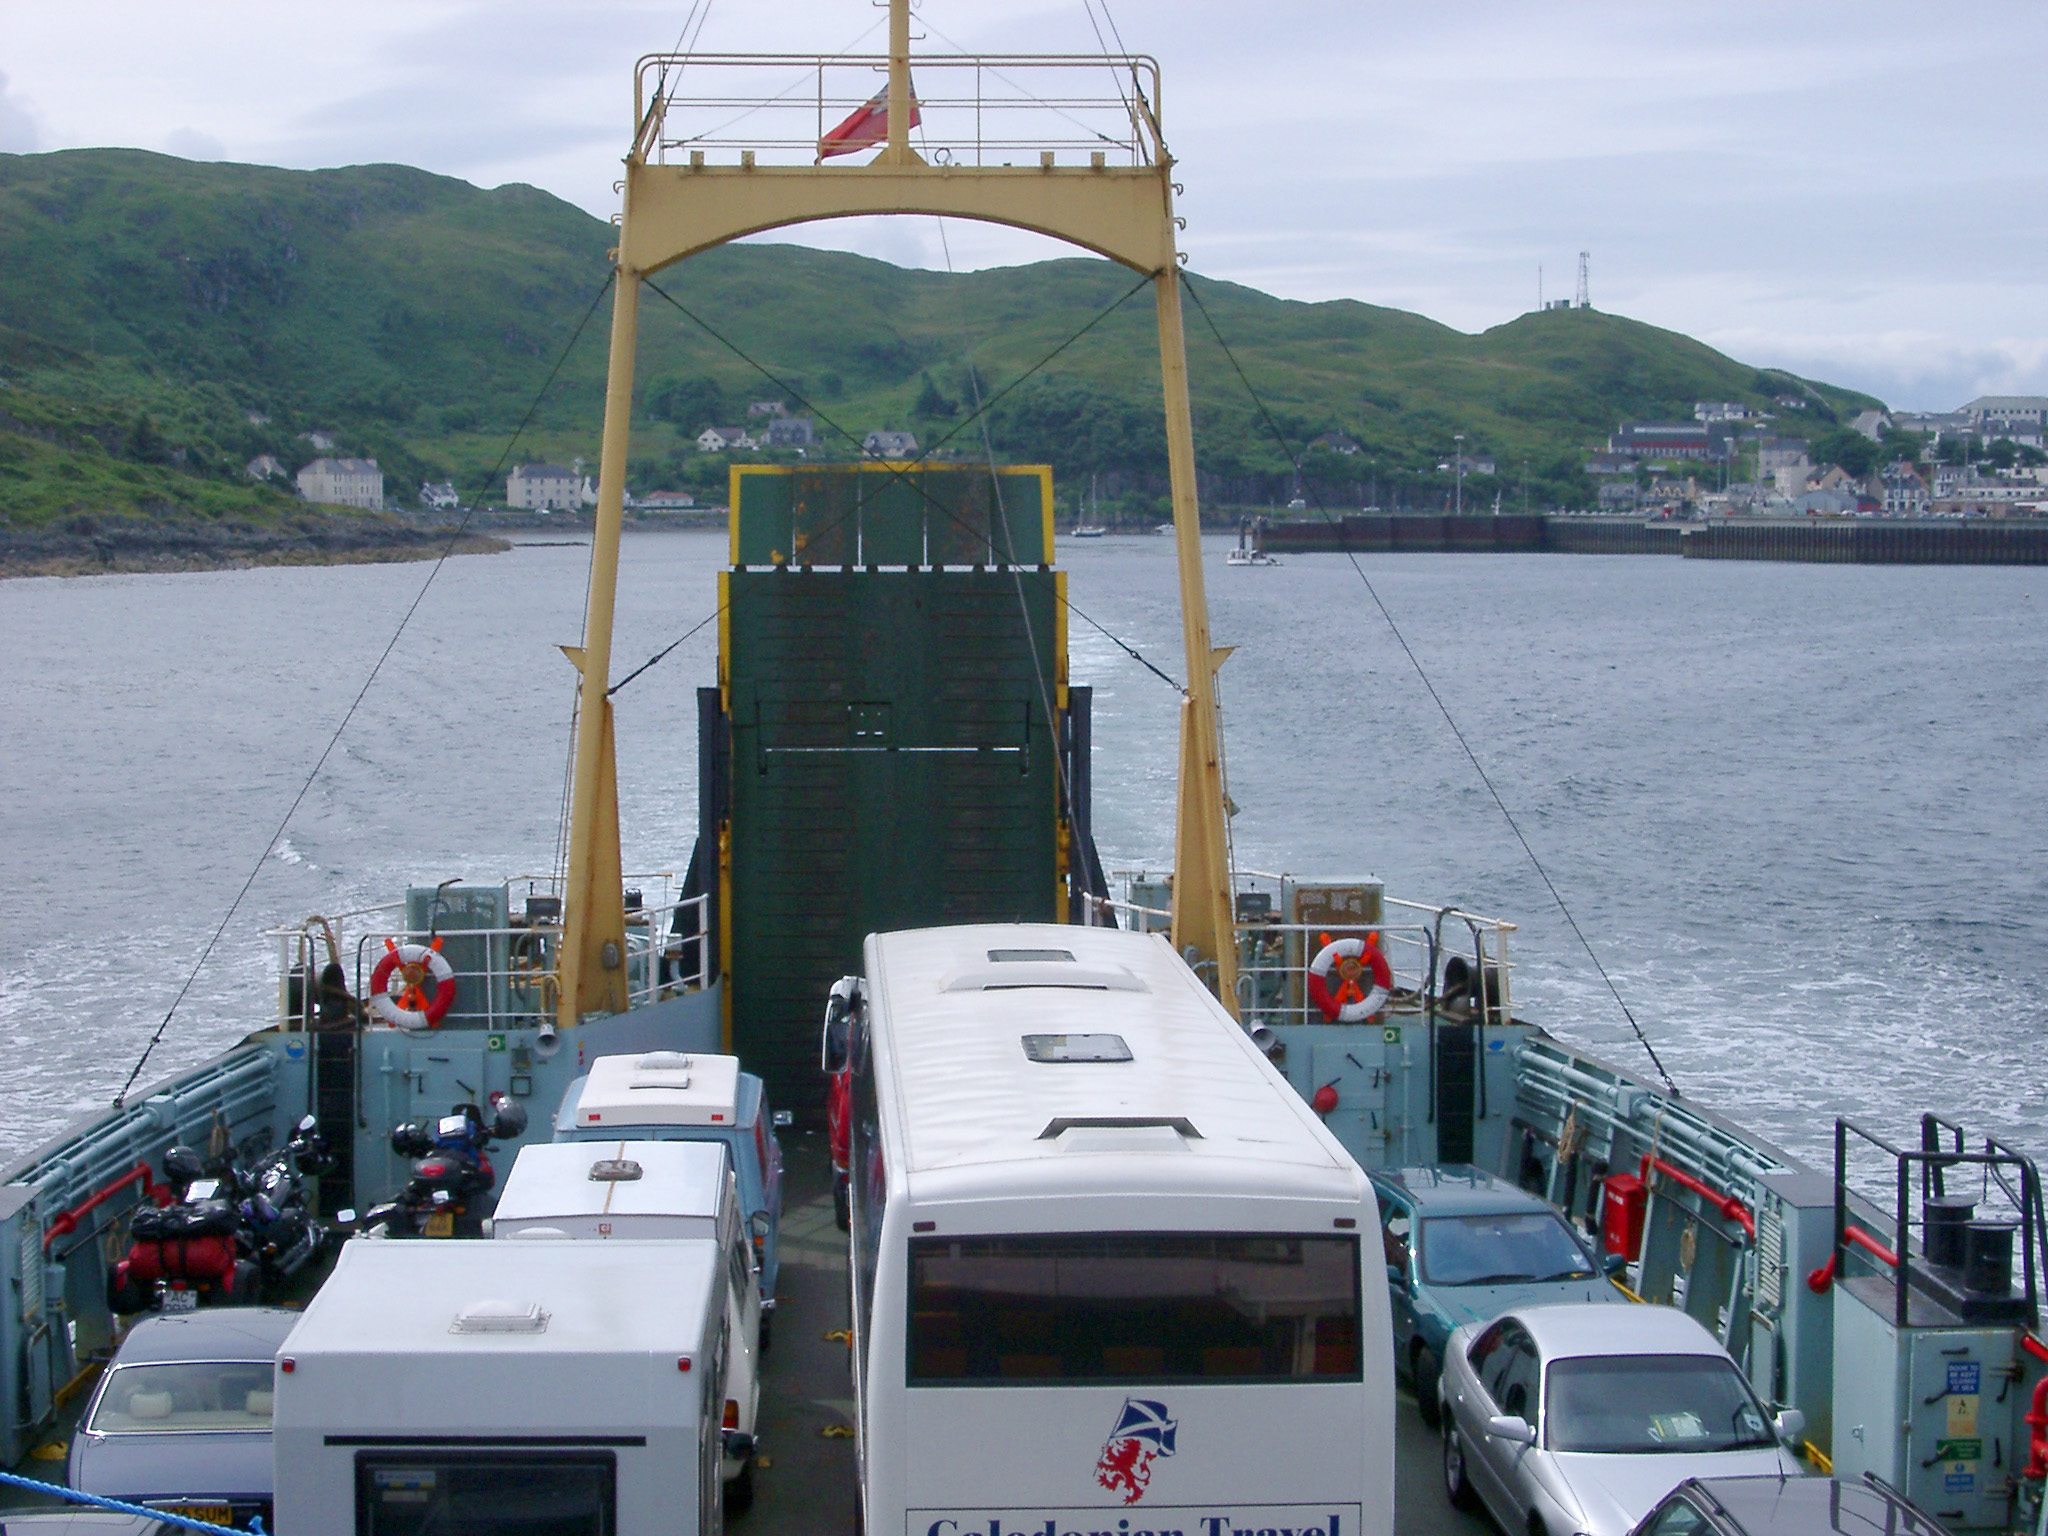 View over the roofs of the cars and bus parked on the deck of the Maillag to Skye ferry as it crosses the straits